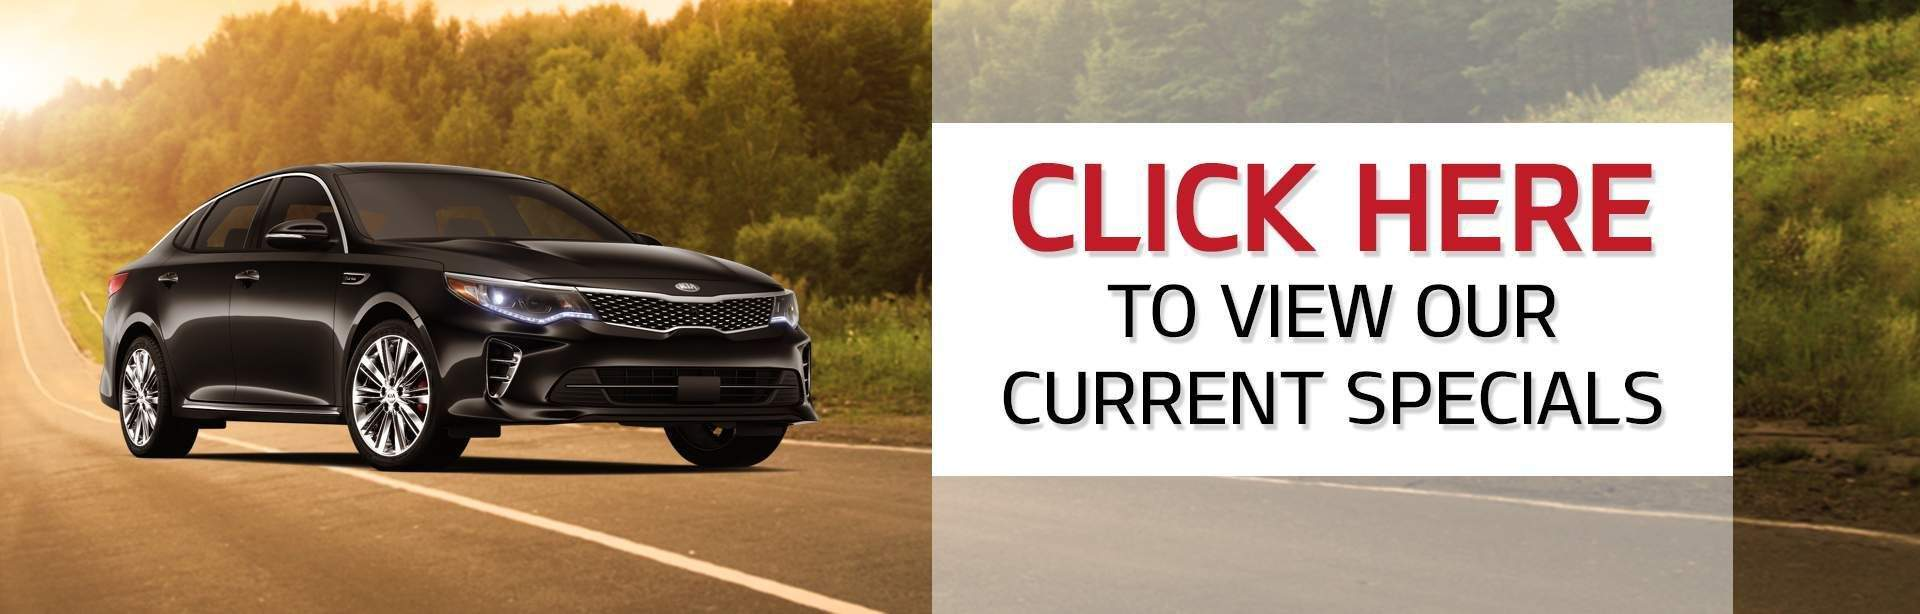 kia crowley dealers search our owned pre dealer bristol inventory vehicles ct new